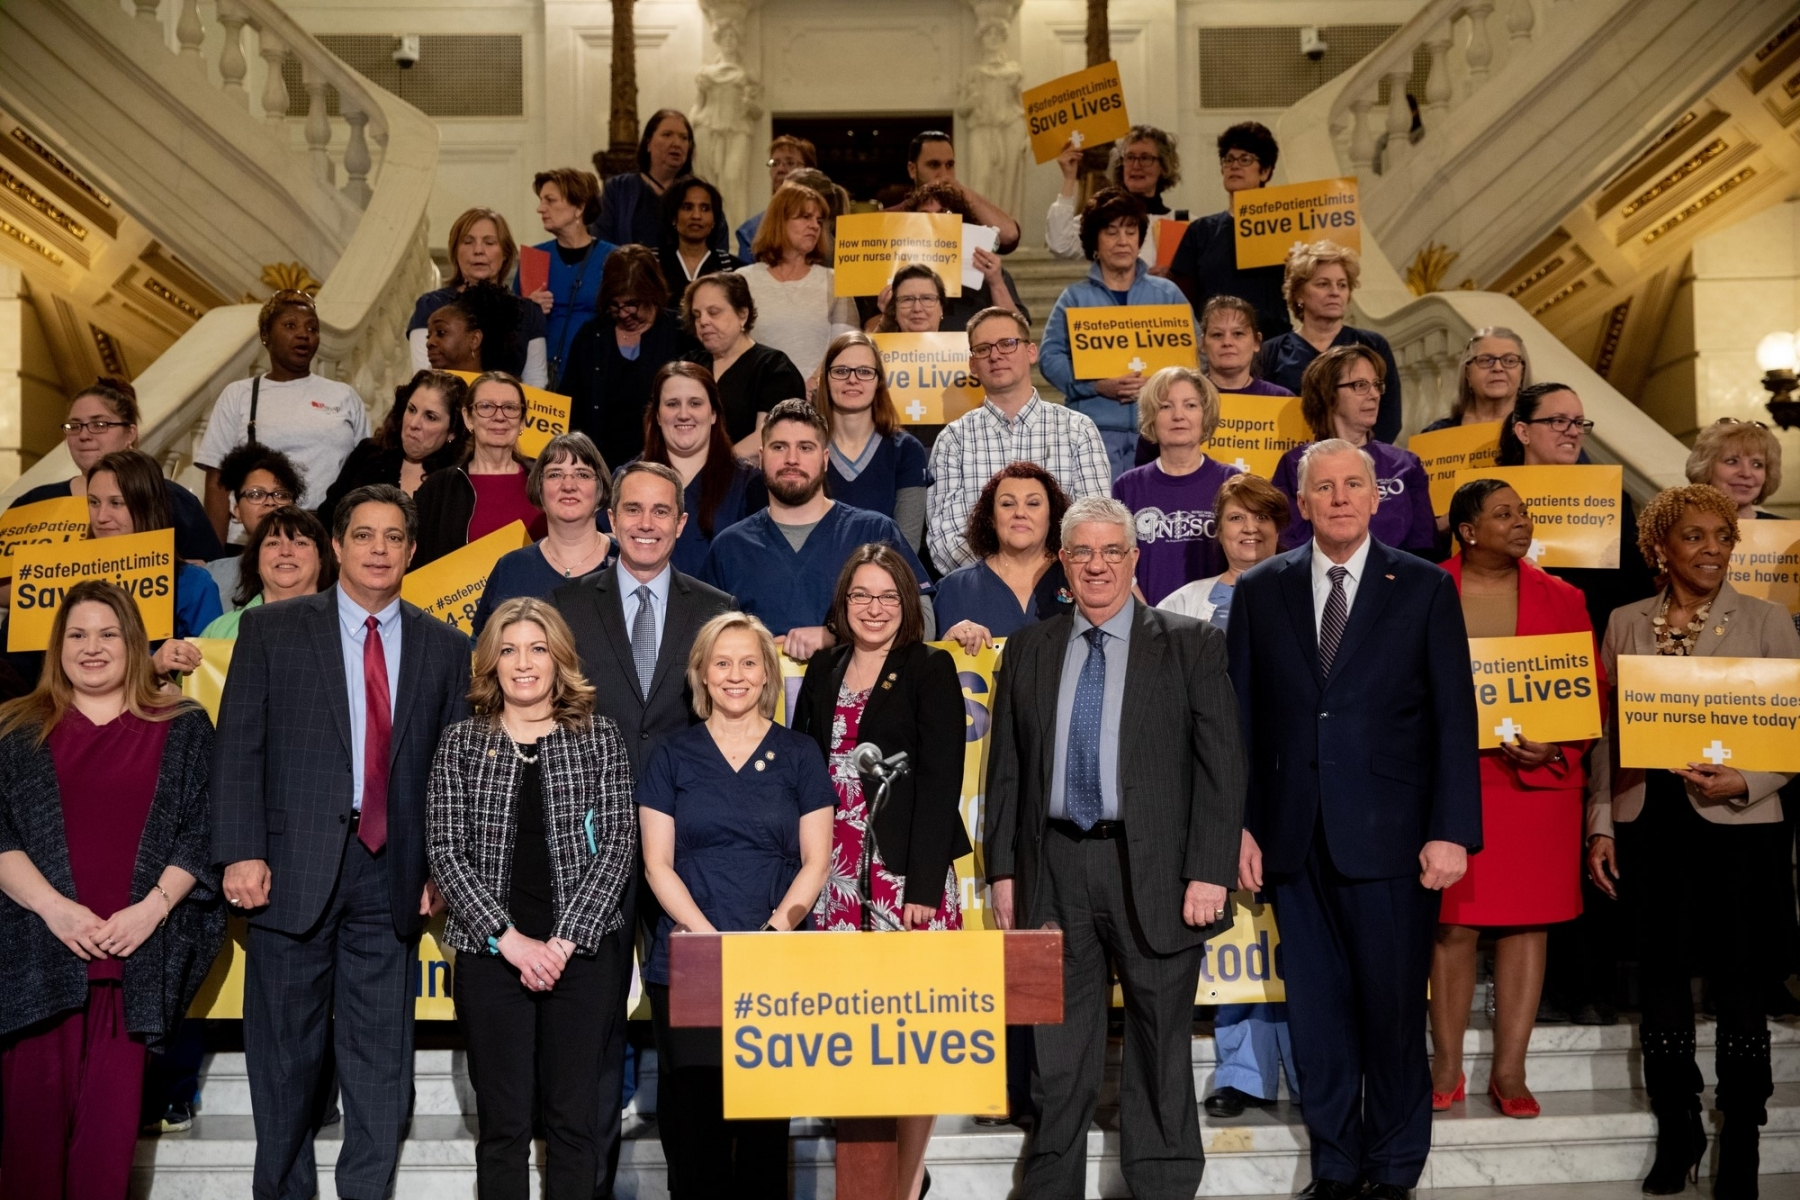 March 20, 2019: Senator Steve Santarsiero joins Senator Maria Collett, RN, Rep. Gene DiGirolamo and fellow legislators for a press conference announcing legislation to set safe nurse-to-patient limits in Pennsylvania hospitals.